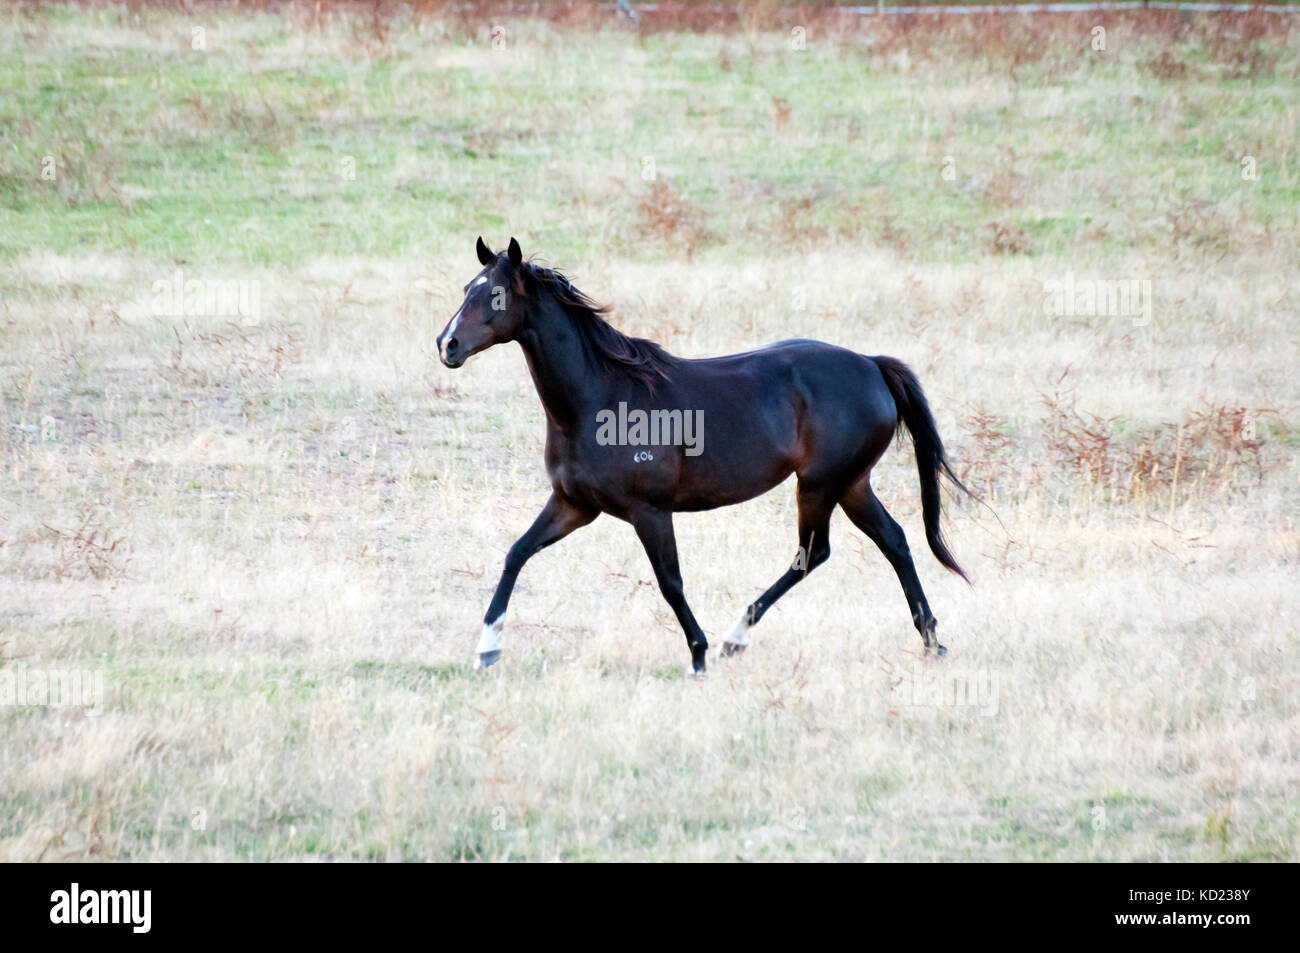 Thoroughbred horse in a paddock near the Glenelg River outside Casterton, western Victoria, Australia - Stock Image